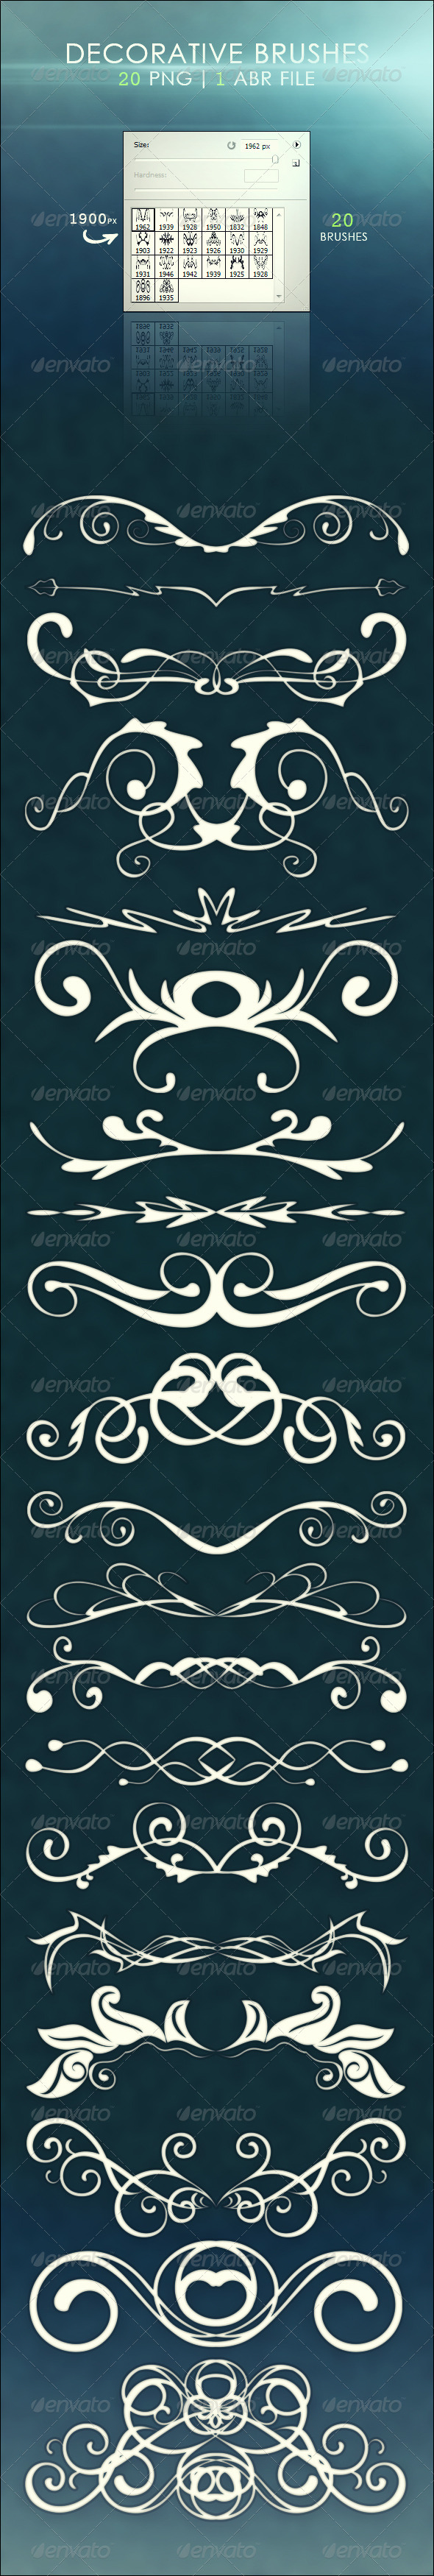 Decorative Brushes - Flourishes Brushes